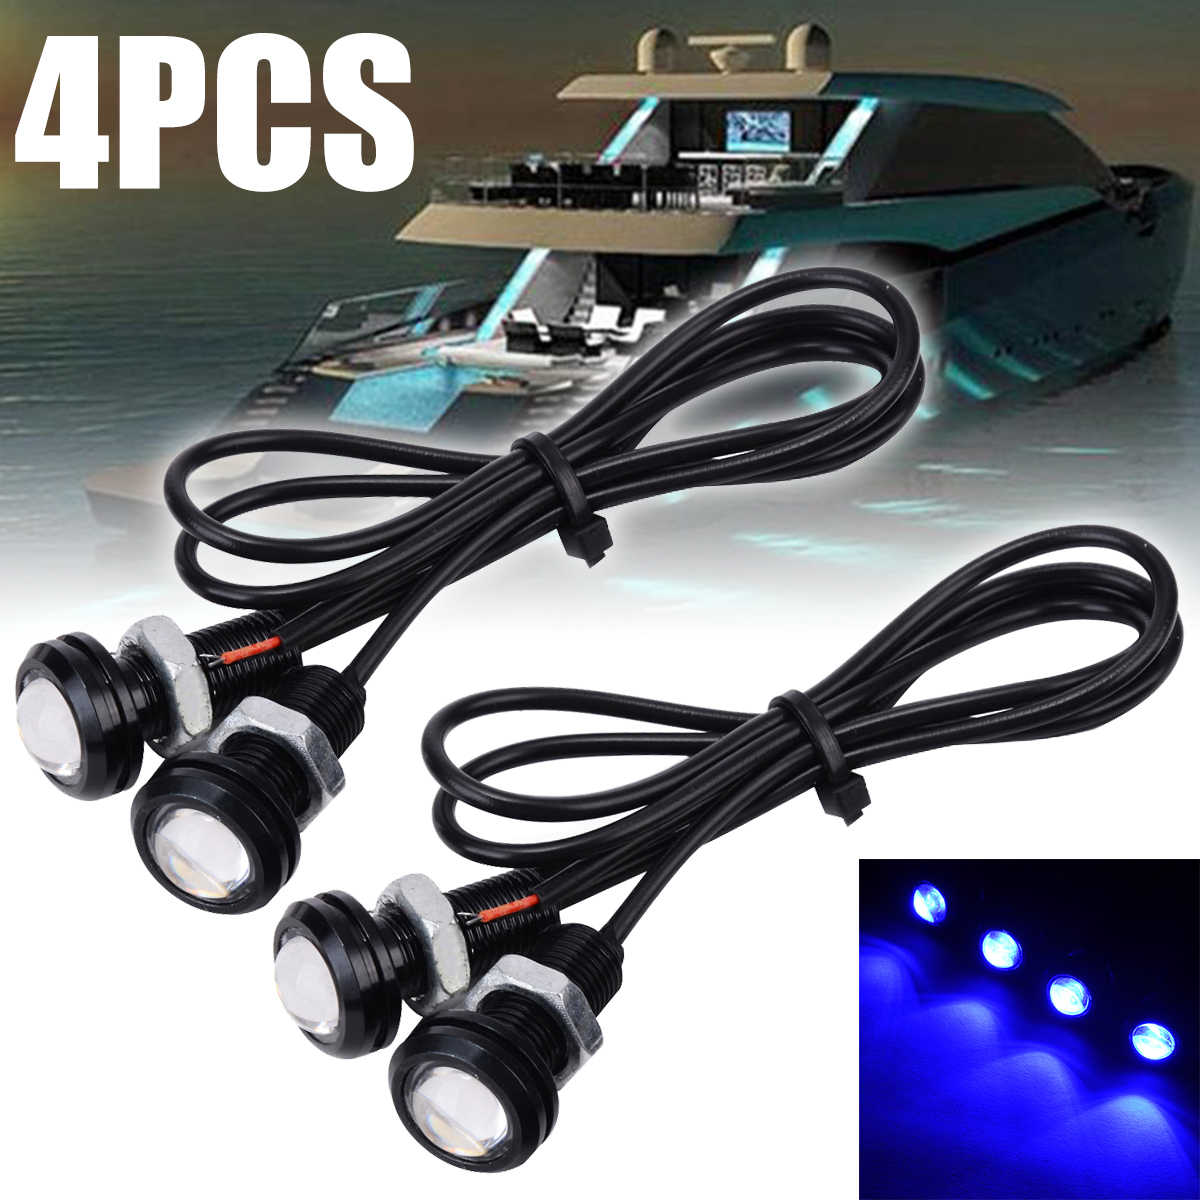 Image 2 - Universal Boat Drain Plug Light Lamp 4pcs/set Blue LED Waterproof Underwater Fish Boat Light Parts Accessories-in Marine Hardware from Automobiles & Motorcycles